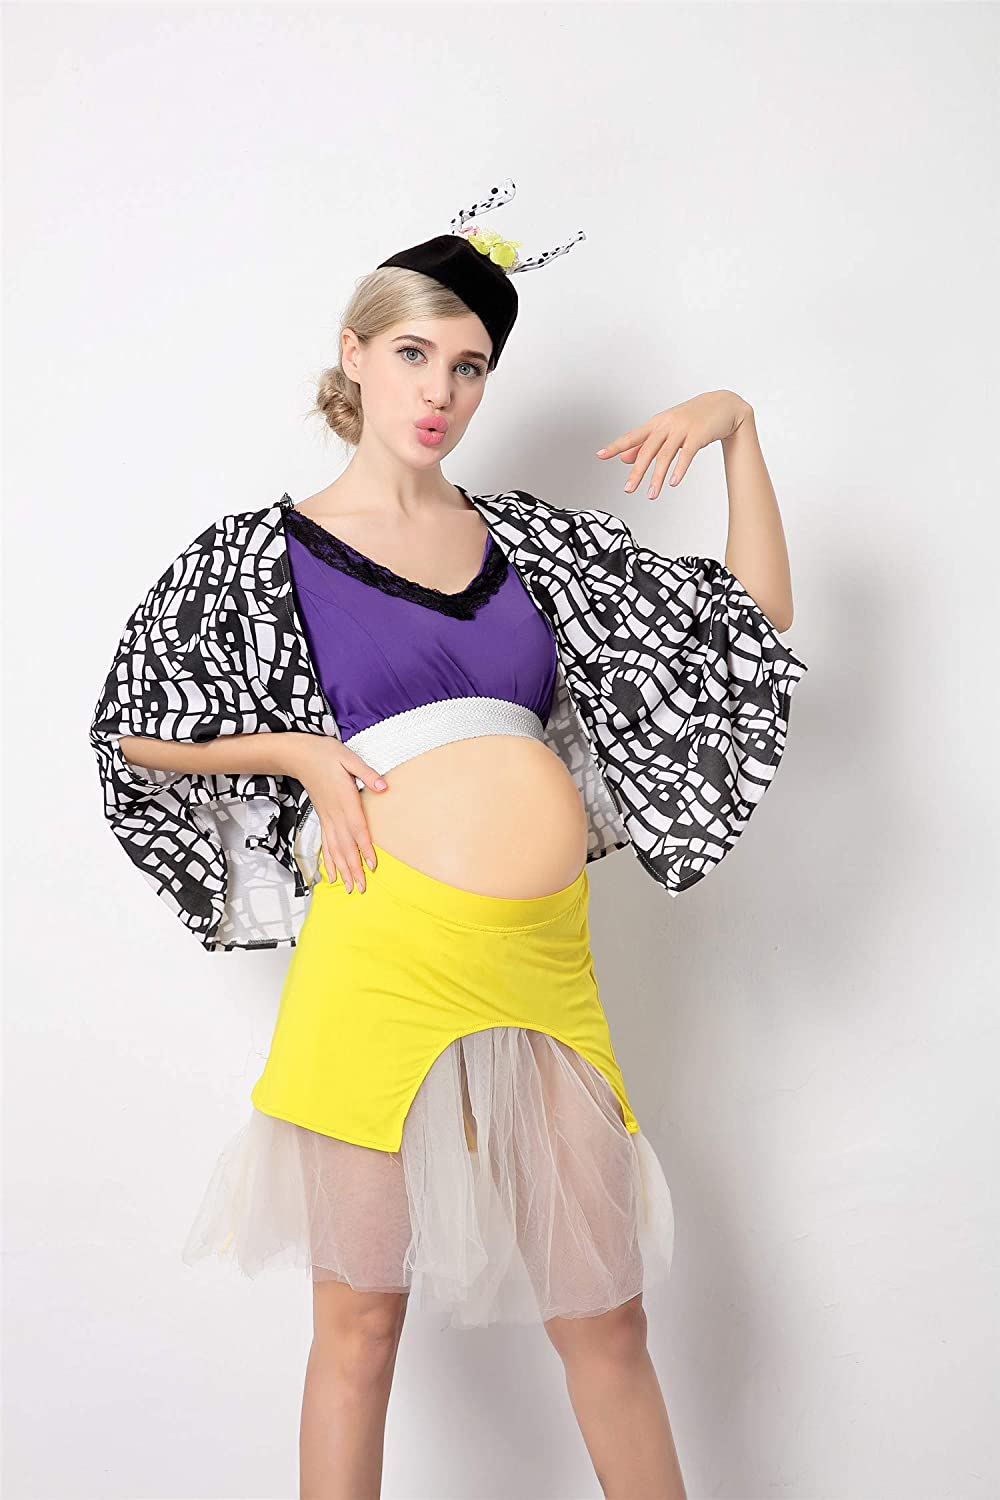 Fashion Pregnant Women Take Pictures Mummy Photography Clothes Shirt Shorts Hat Daily Party Wedding Reception